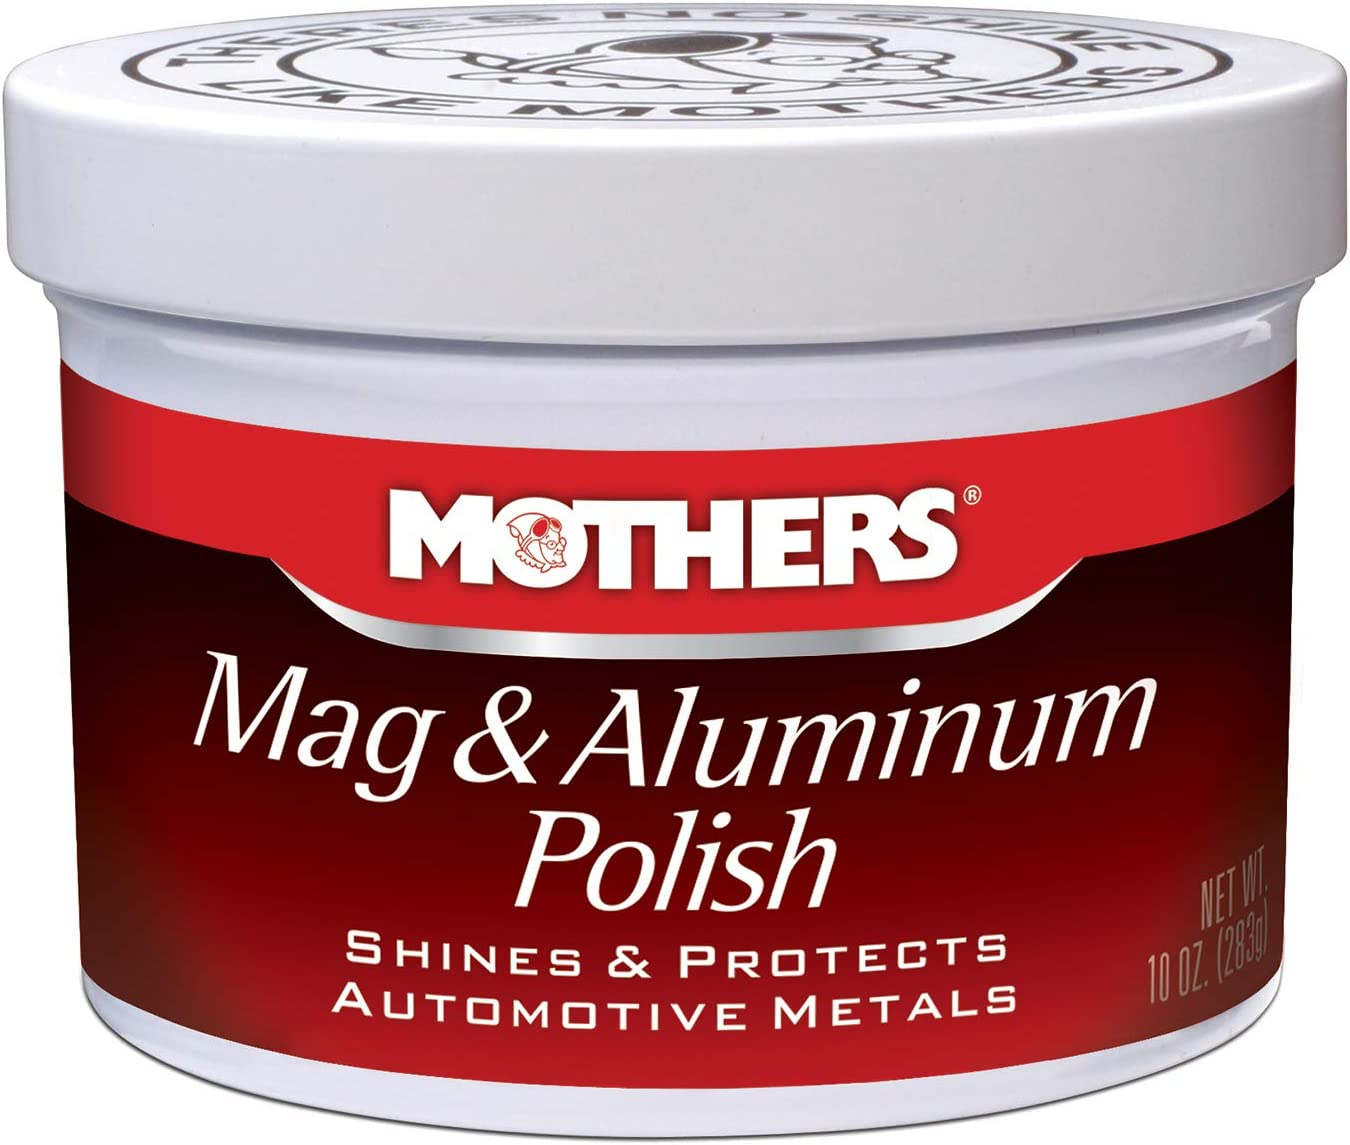 Small Product Image of Mothers Mag & Aluminum Polish